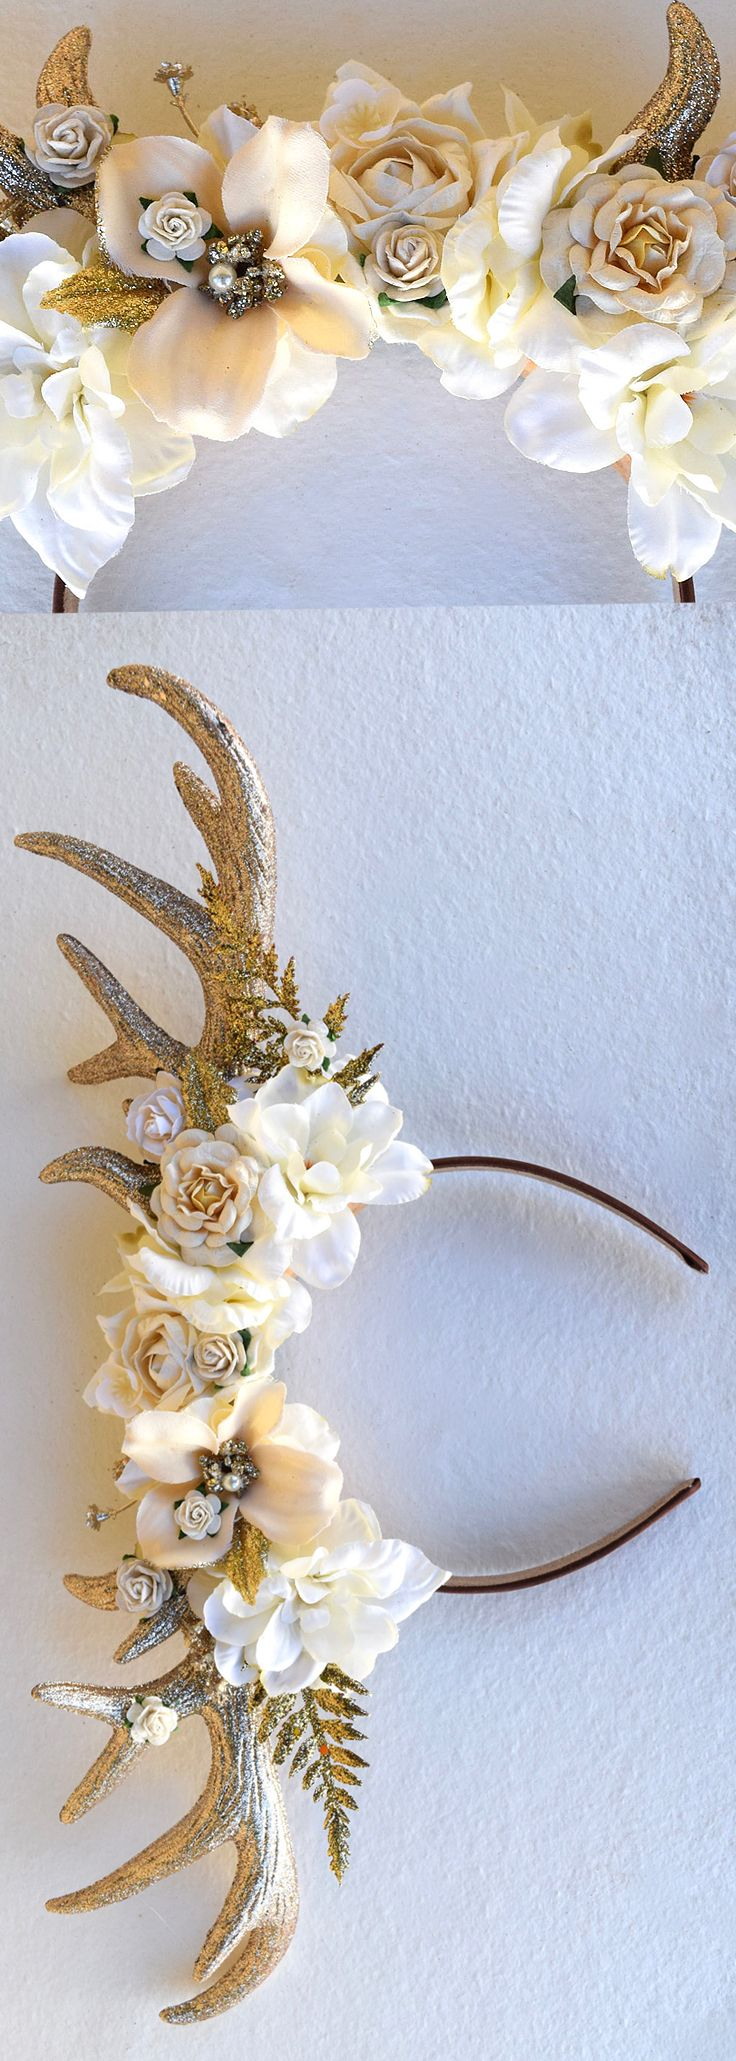 This gorgeous deer antler headband is sure to make your Christmas wedding photos STUNNING. Golden deer antlers are adorned with assorted blooms in nude, ivory and blush. Bits of gold and sparkle shimmer from this gorgeous antler halo. Great for the young bridesmaids. Winter wonderland wedding ideas. Christmas wedding outfits. #christmaswedding #winterwedding #bridesmaids #flowrgirls #winterparty #antlers #christmasparty #affiliatelink #party #fashion #ootd